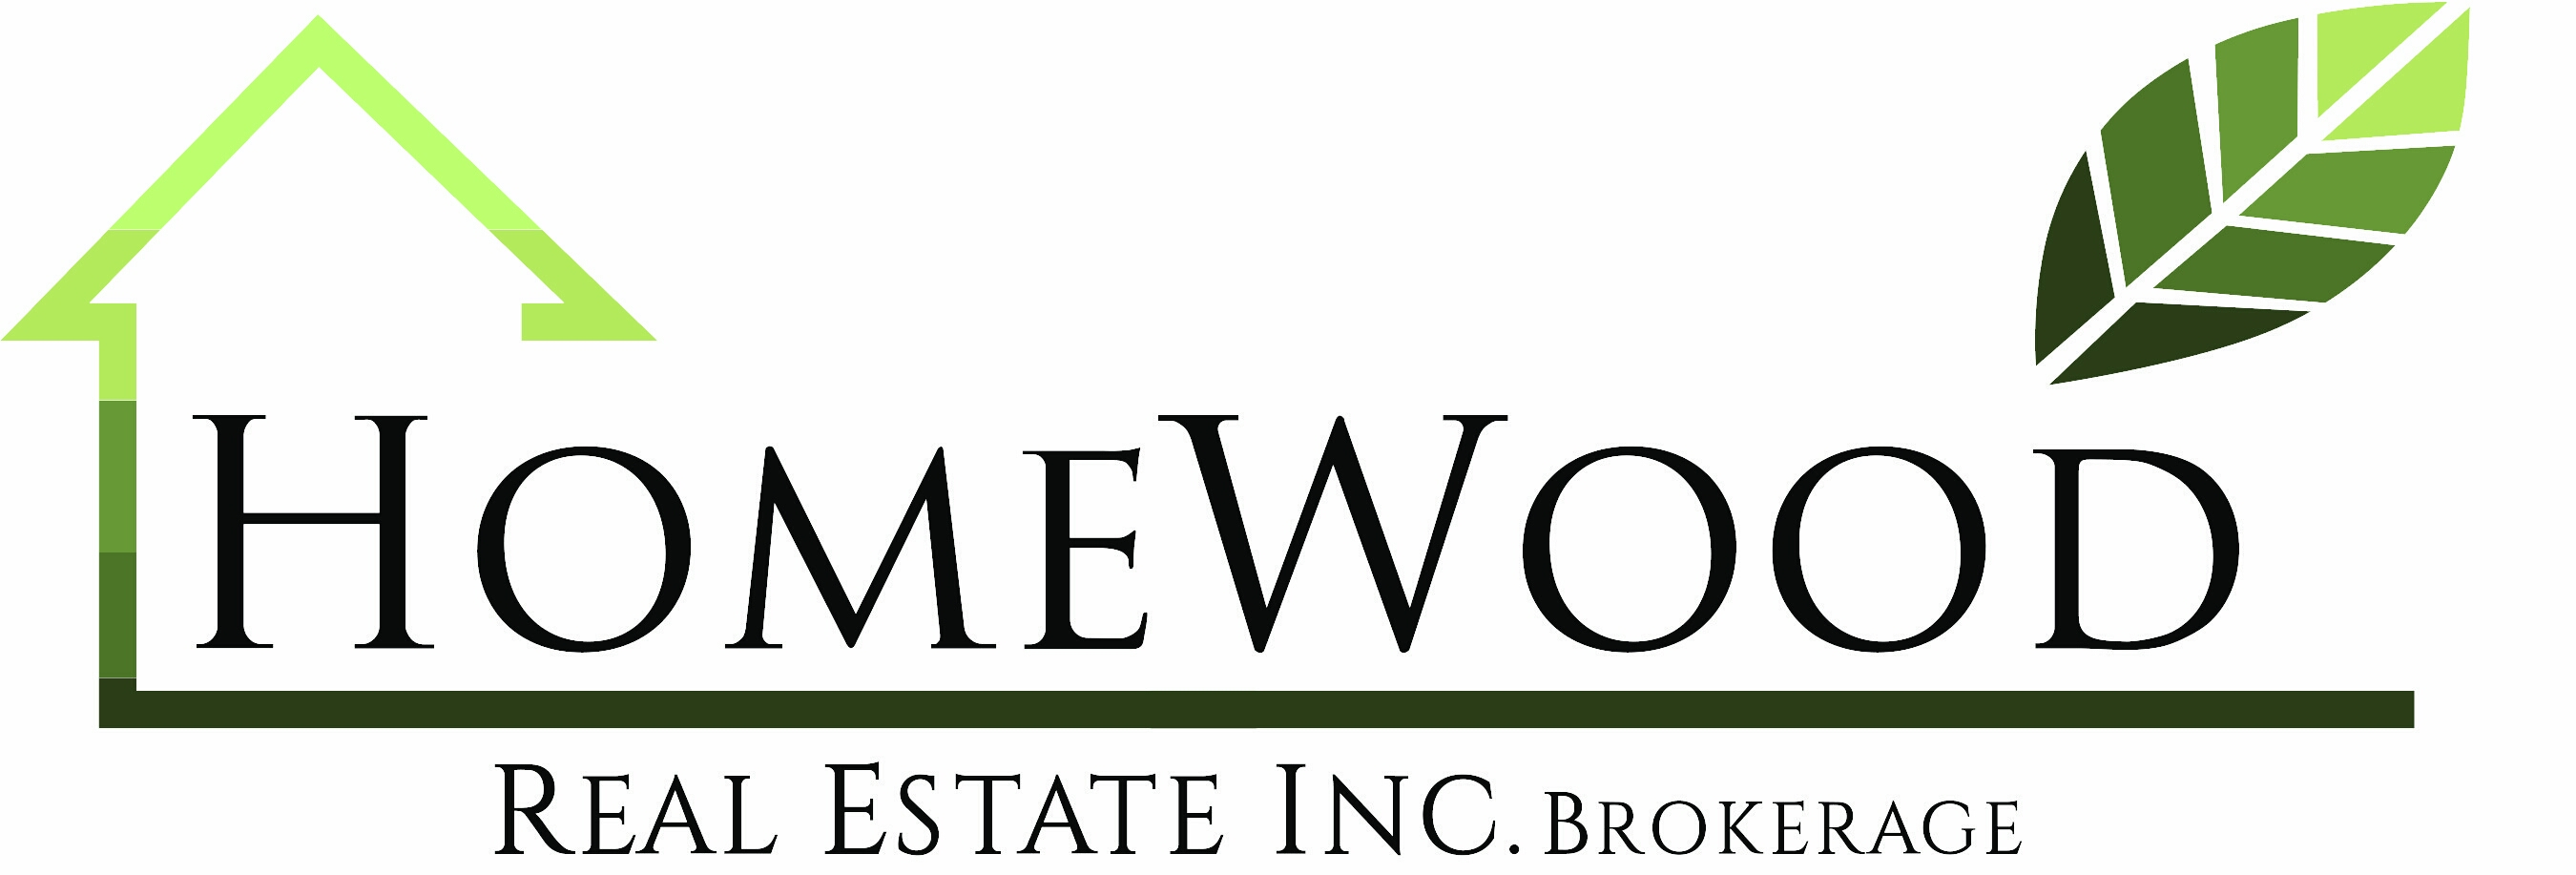 HOMEWOOD REAL ESTATE INC., Brokerage*